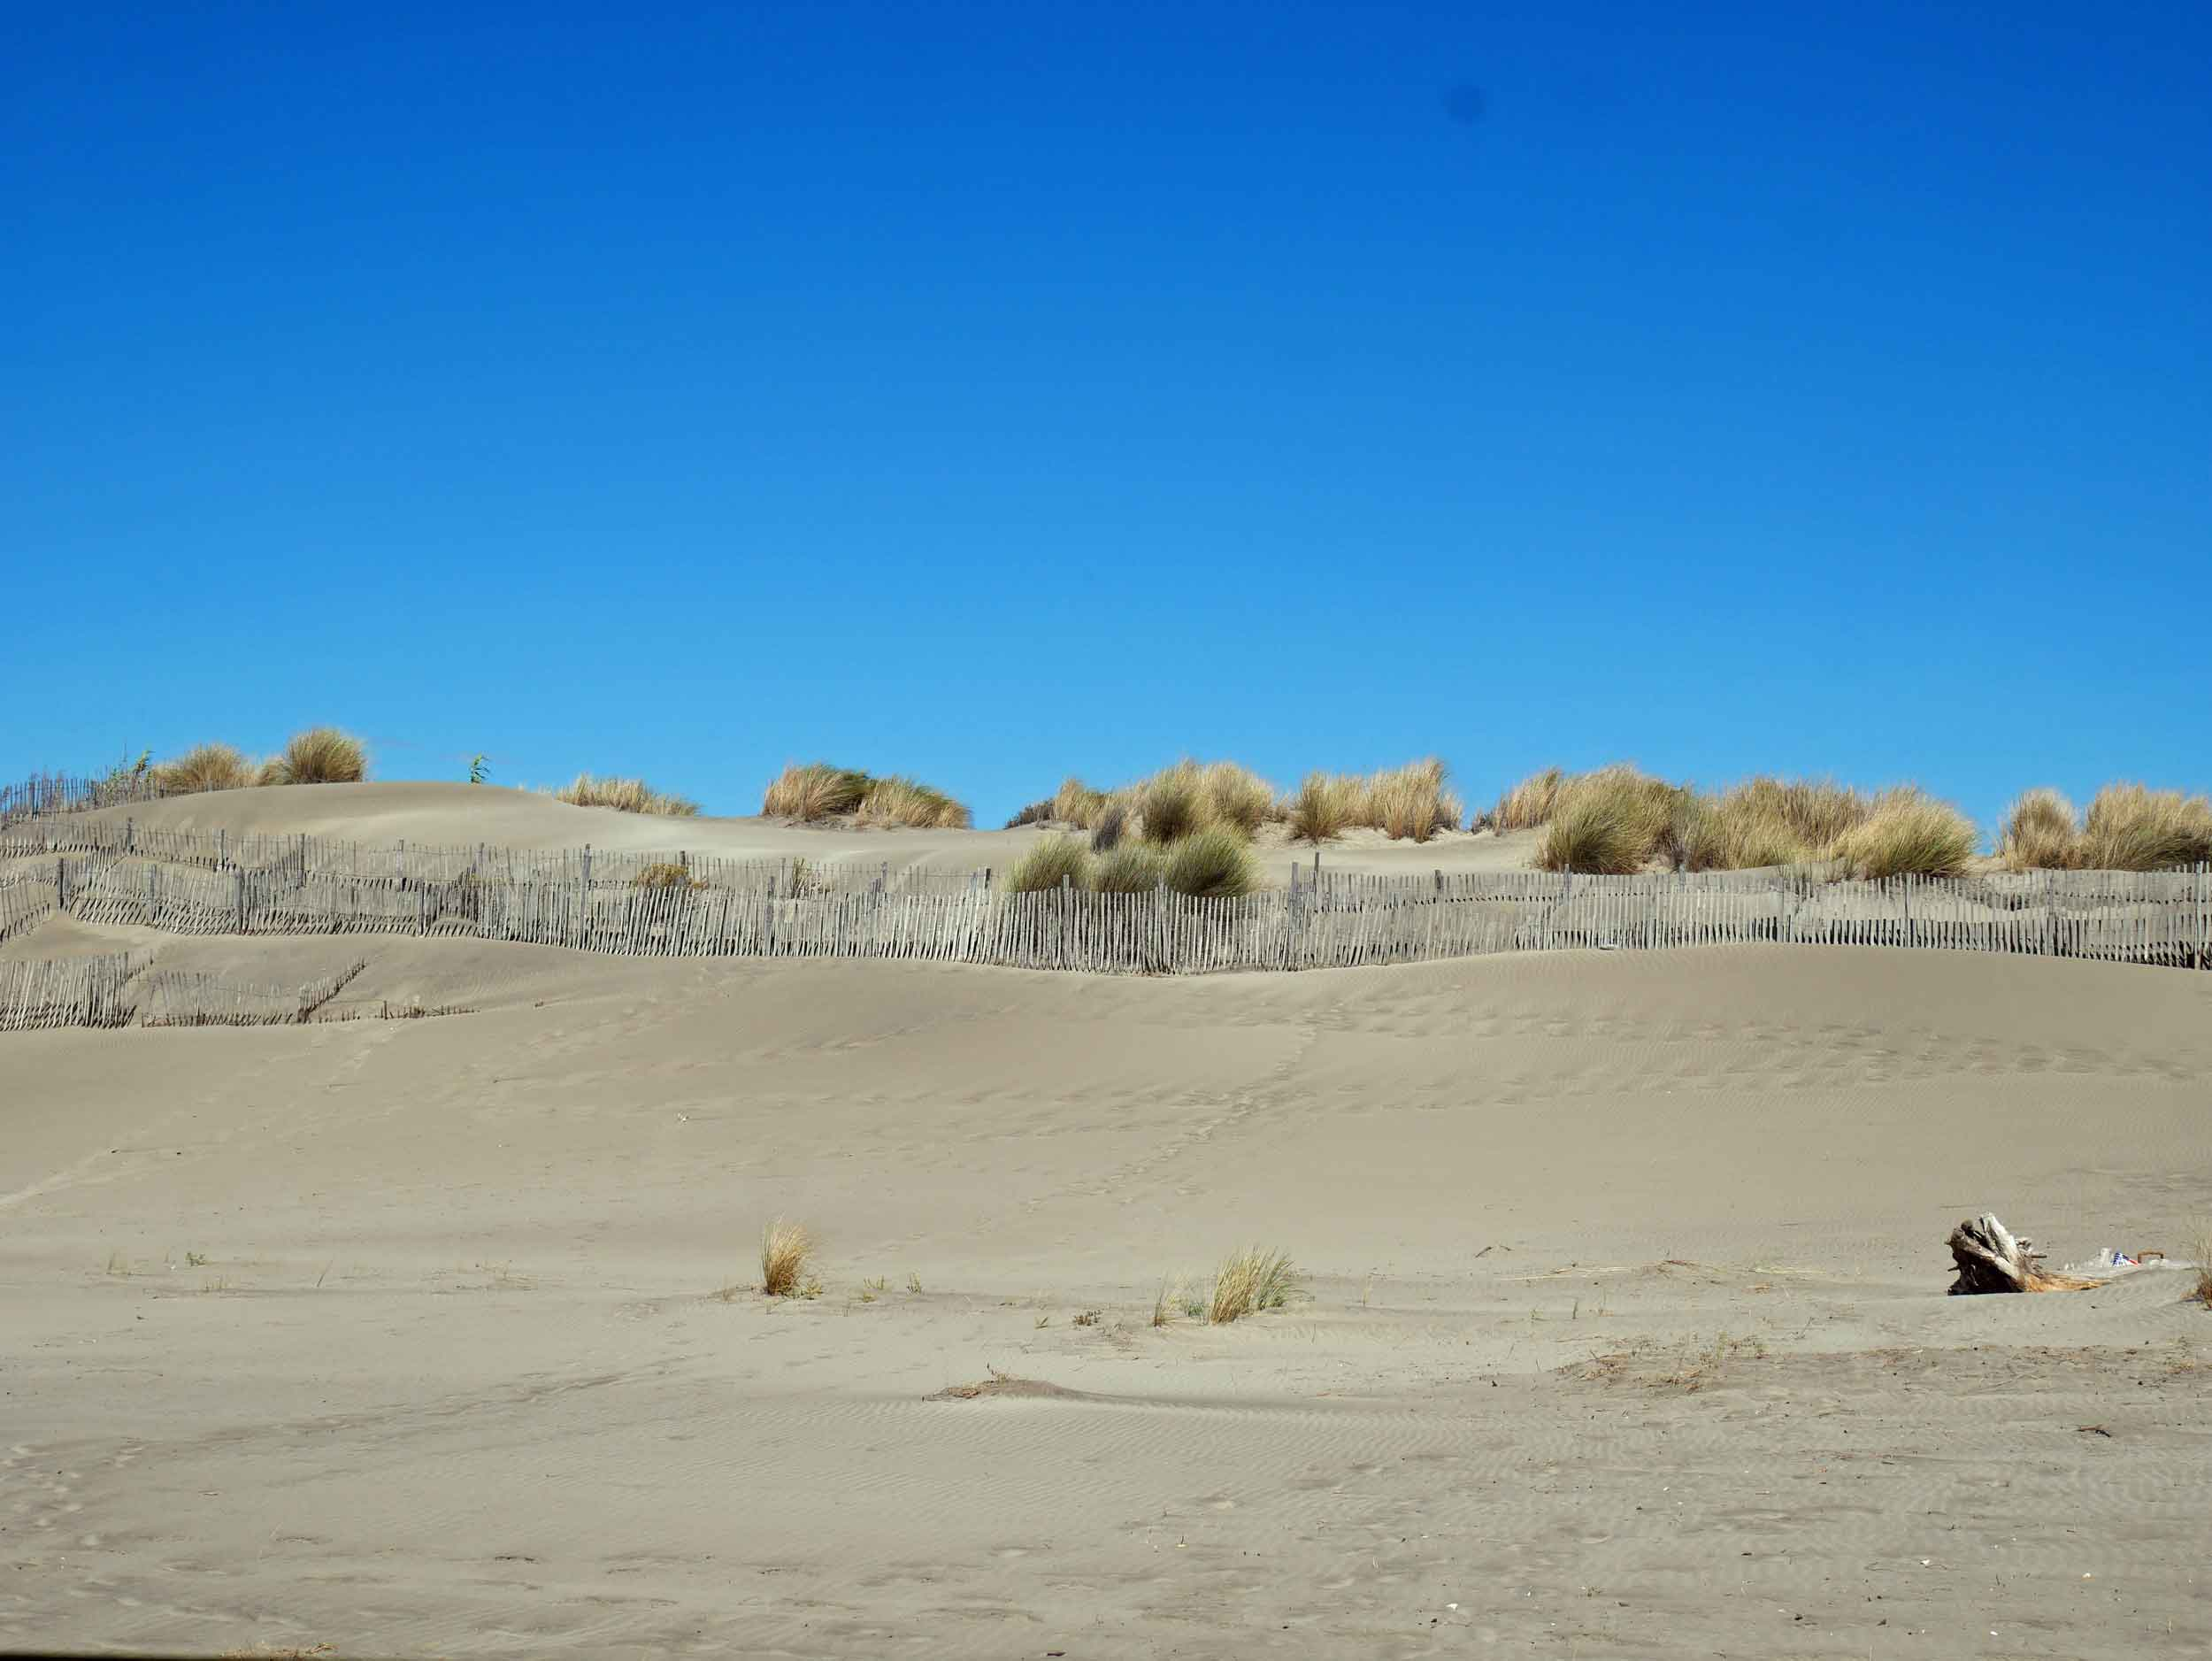 The stunning Camargue Park and Plage de l'Espiguette has miles of rugged coastline and protected dunes (Sept 13).